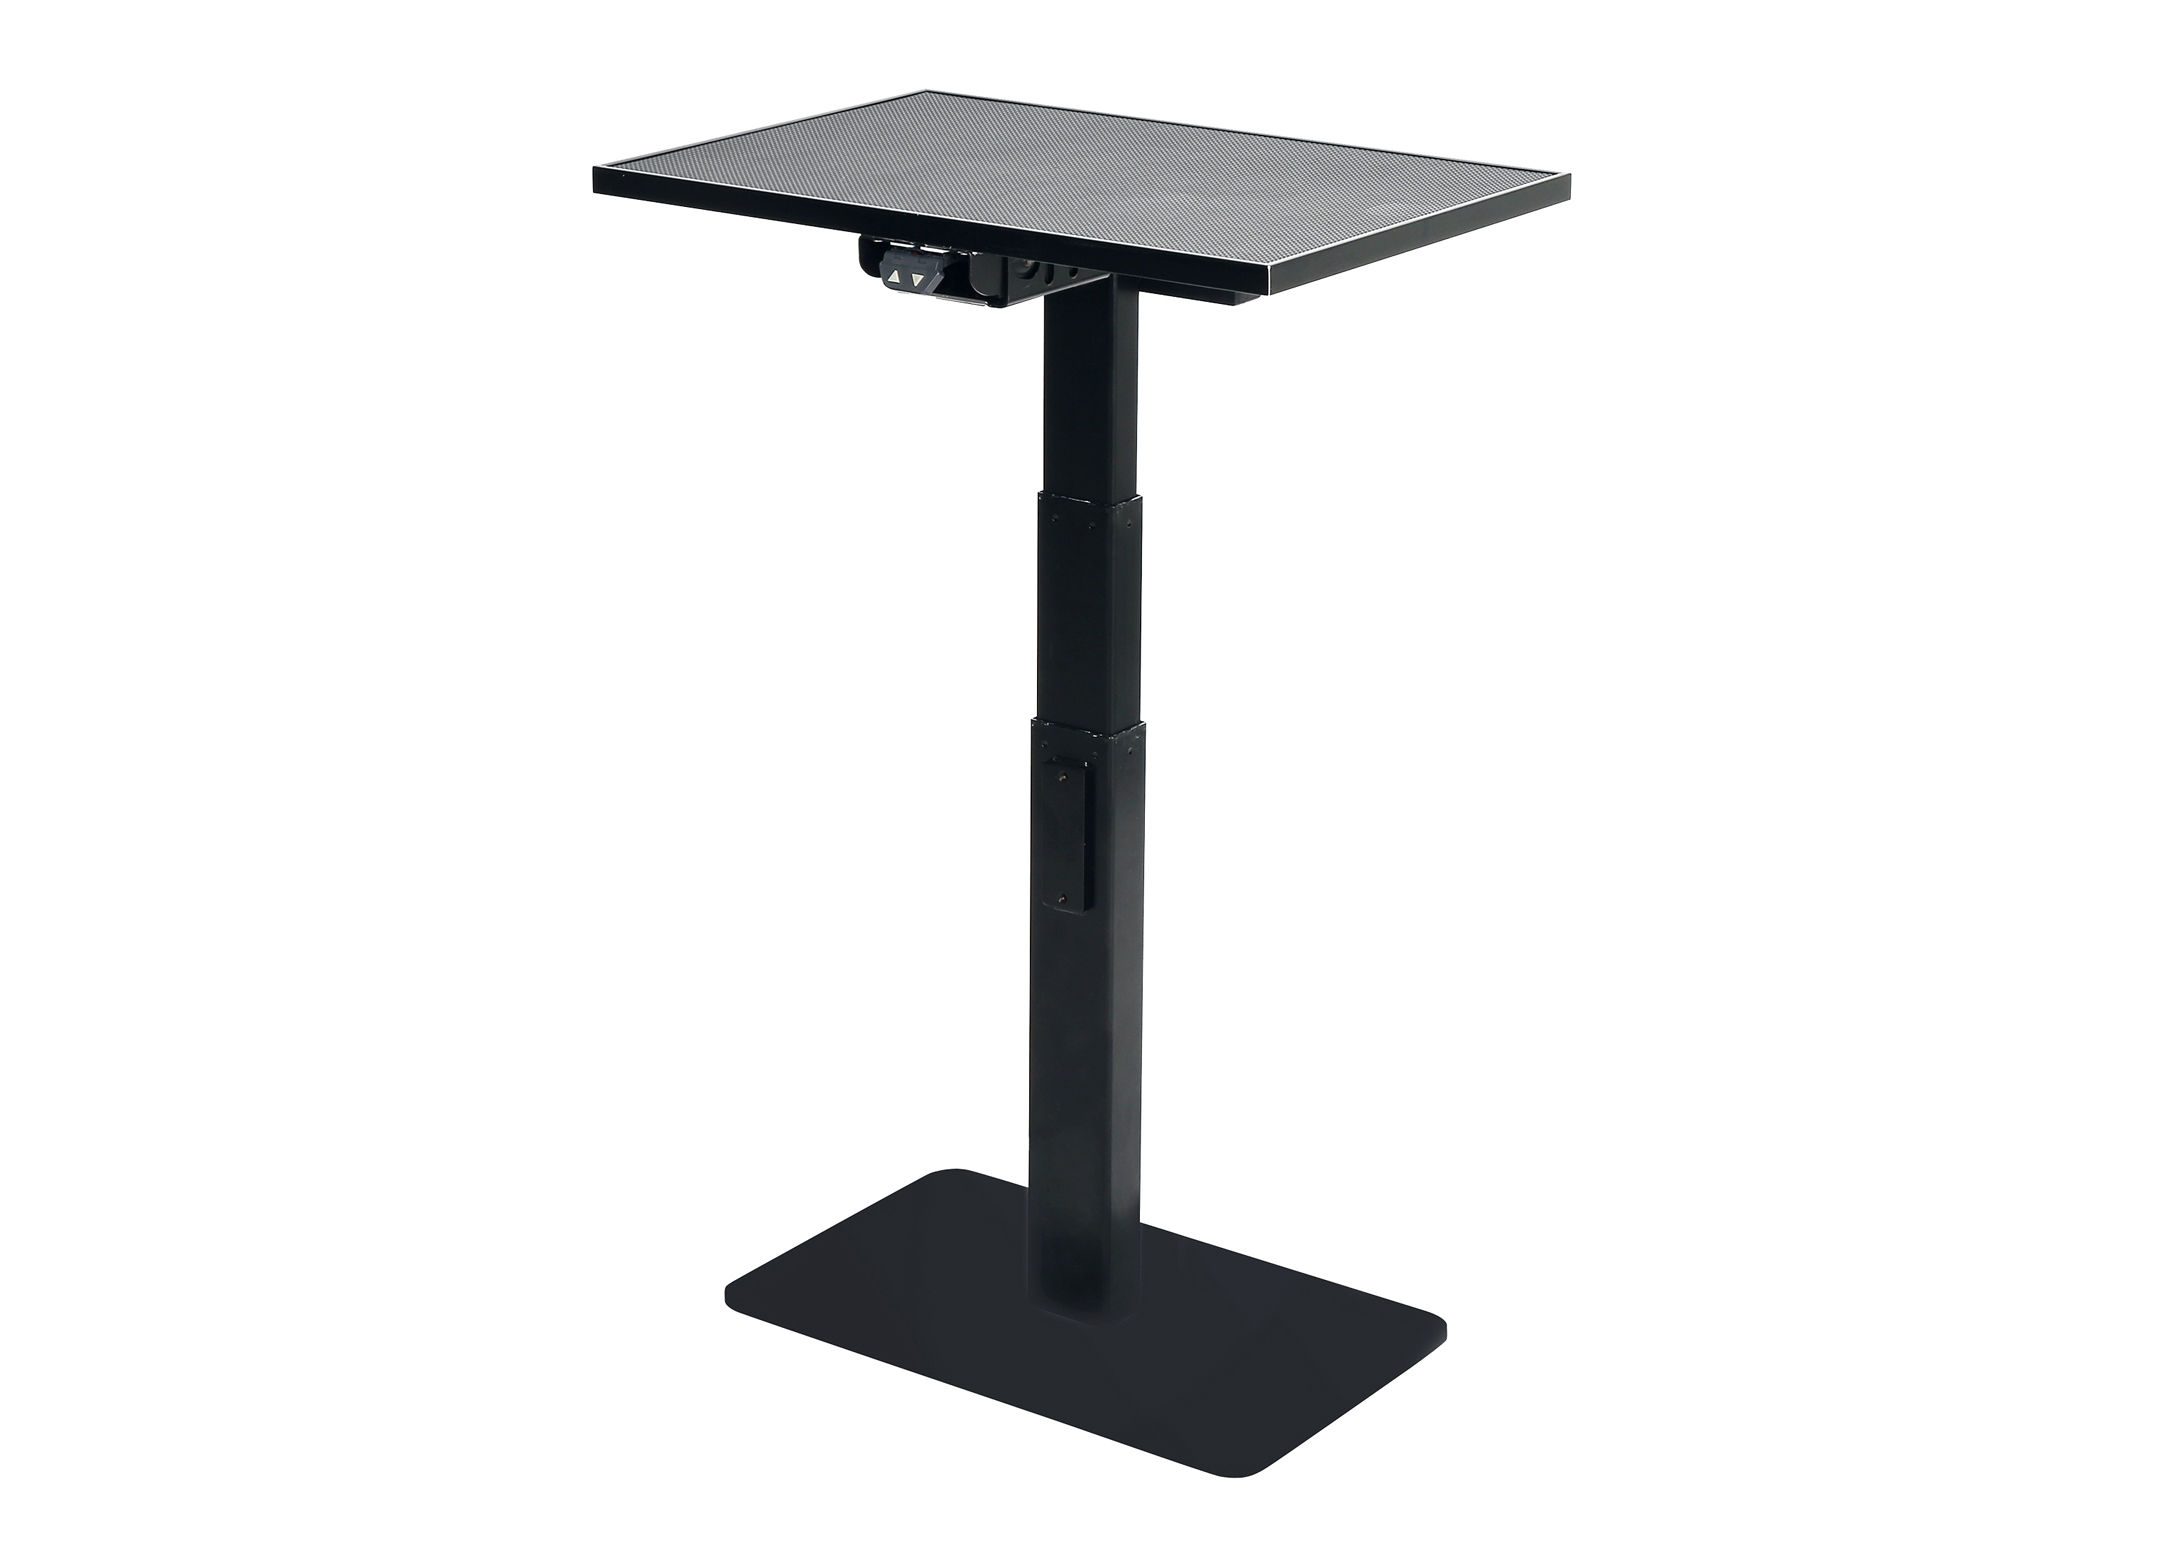 Groom-X Electric Telescopic Table Rectangular 60,5x40,5cm (62-127cmh) with control post